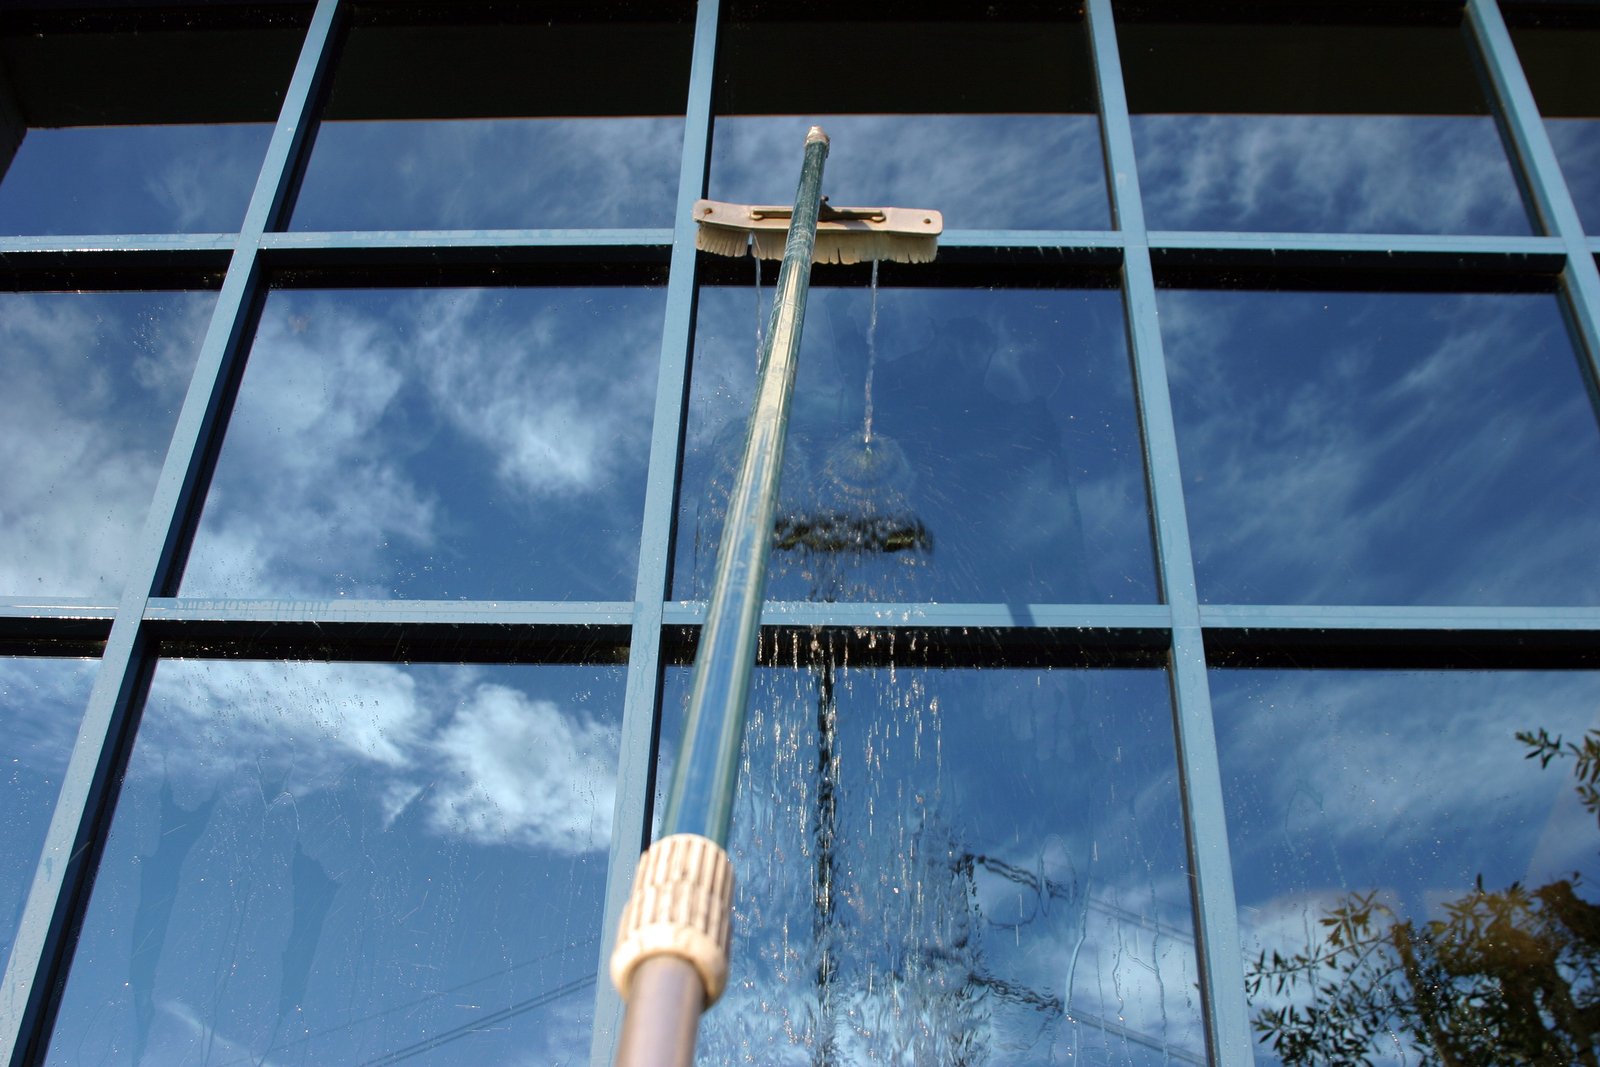 commercial window cleaning area window cleaning ForWindow Washing